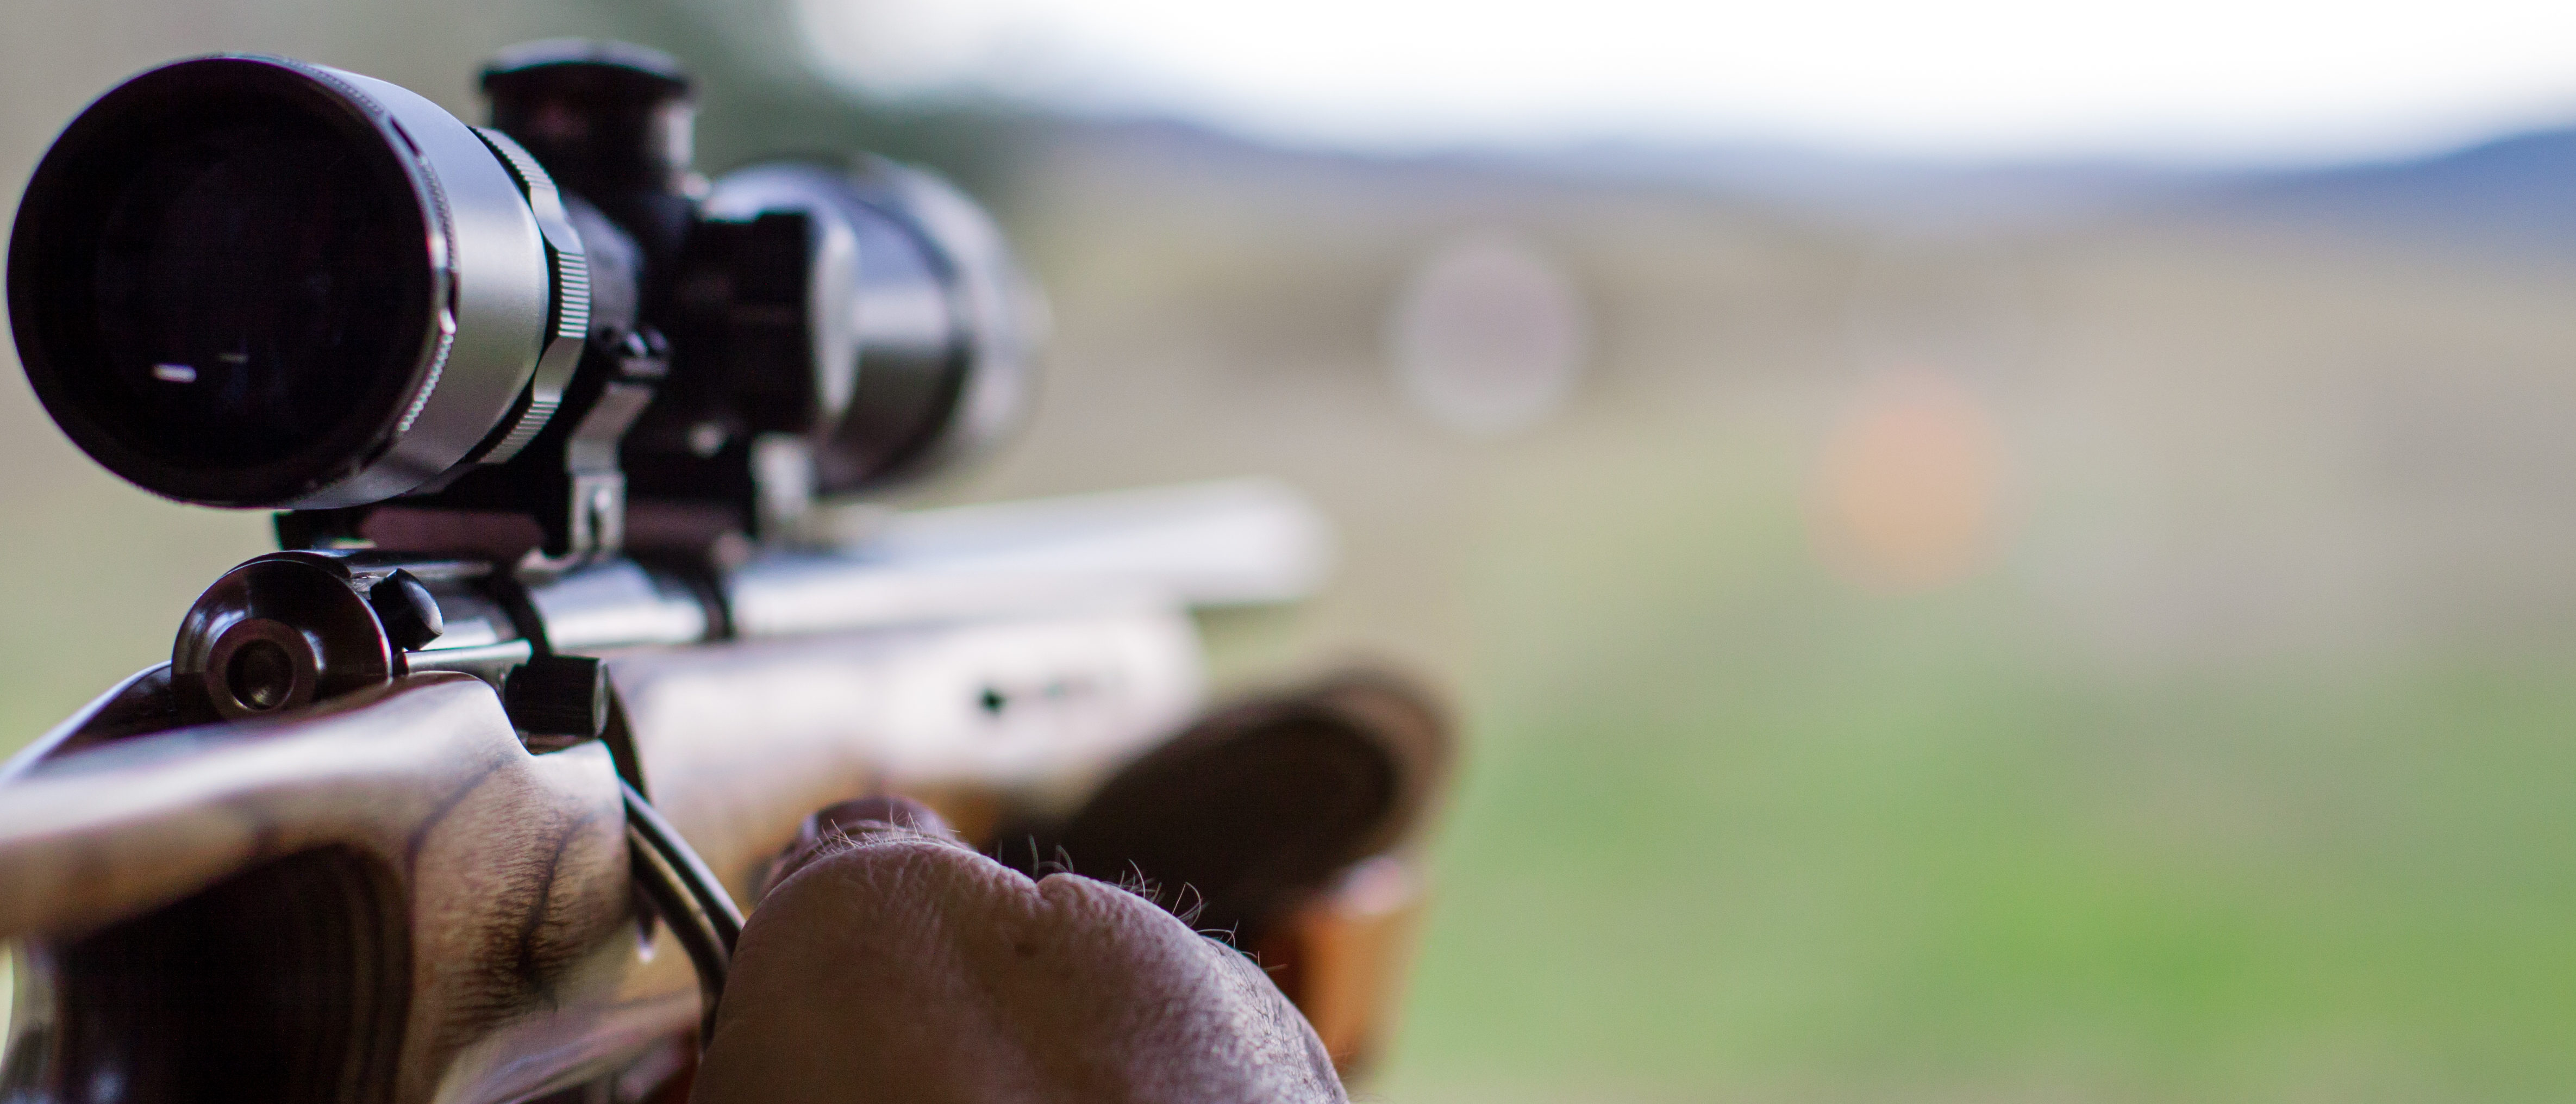 Rifle pointing at range (Shutterstock/jmwalker)